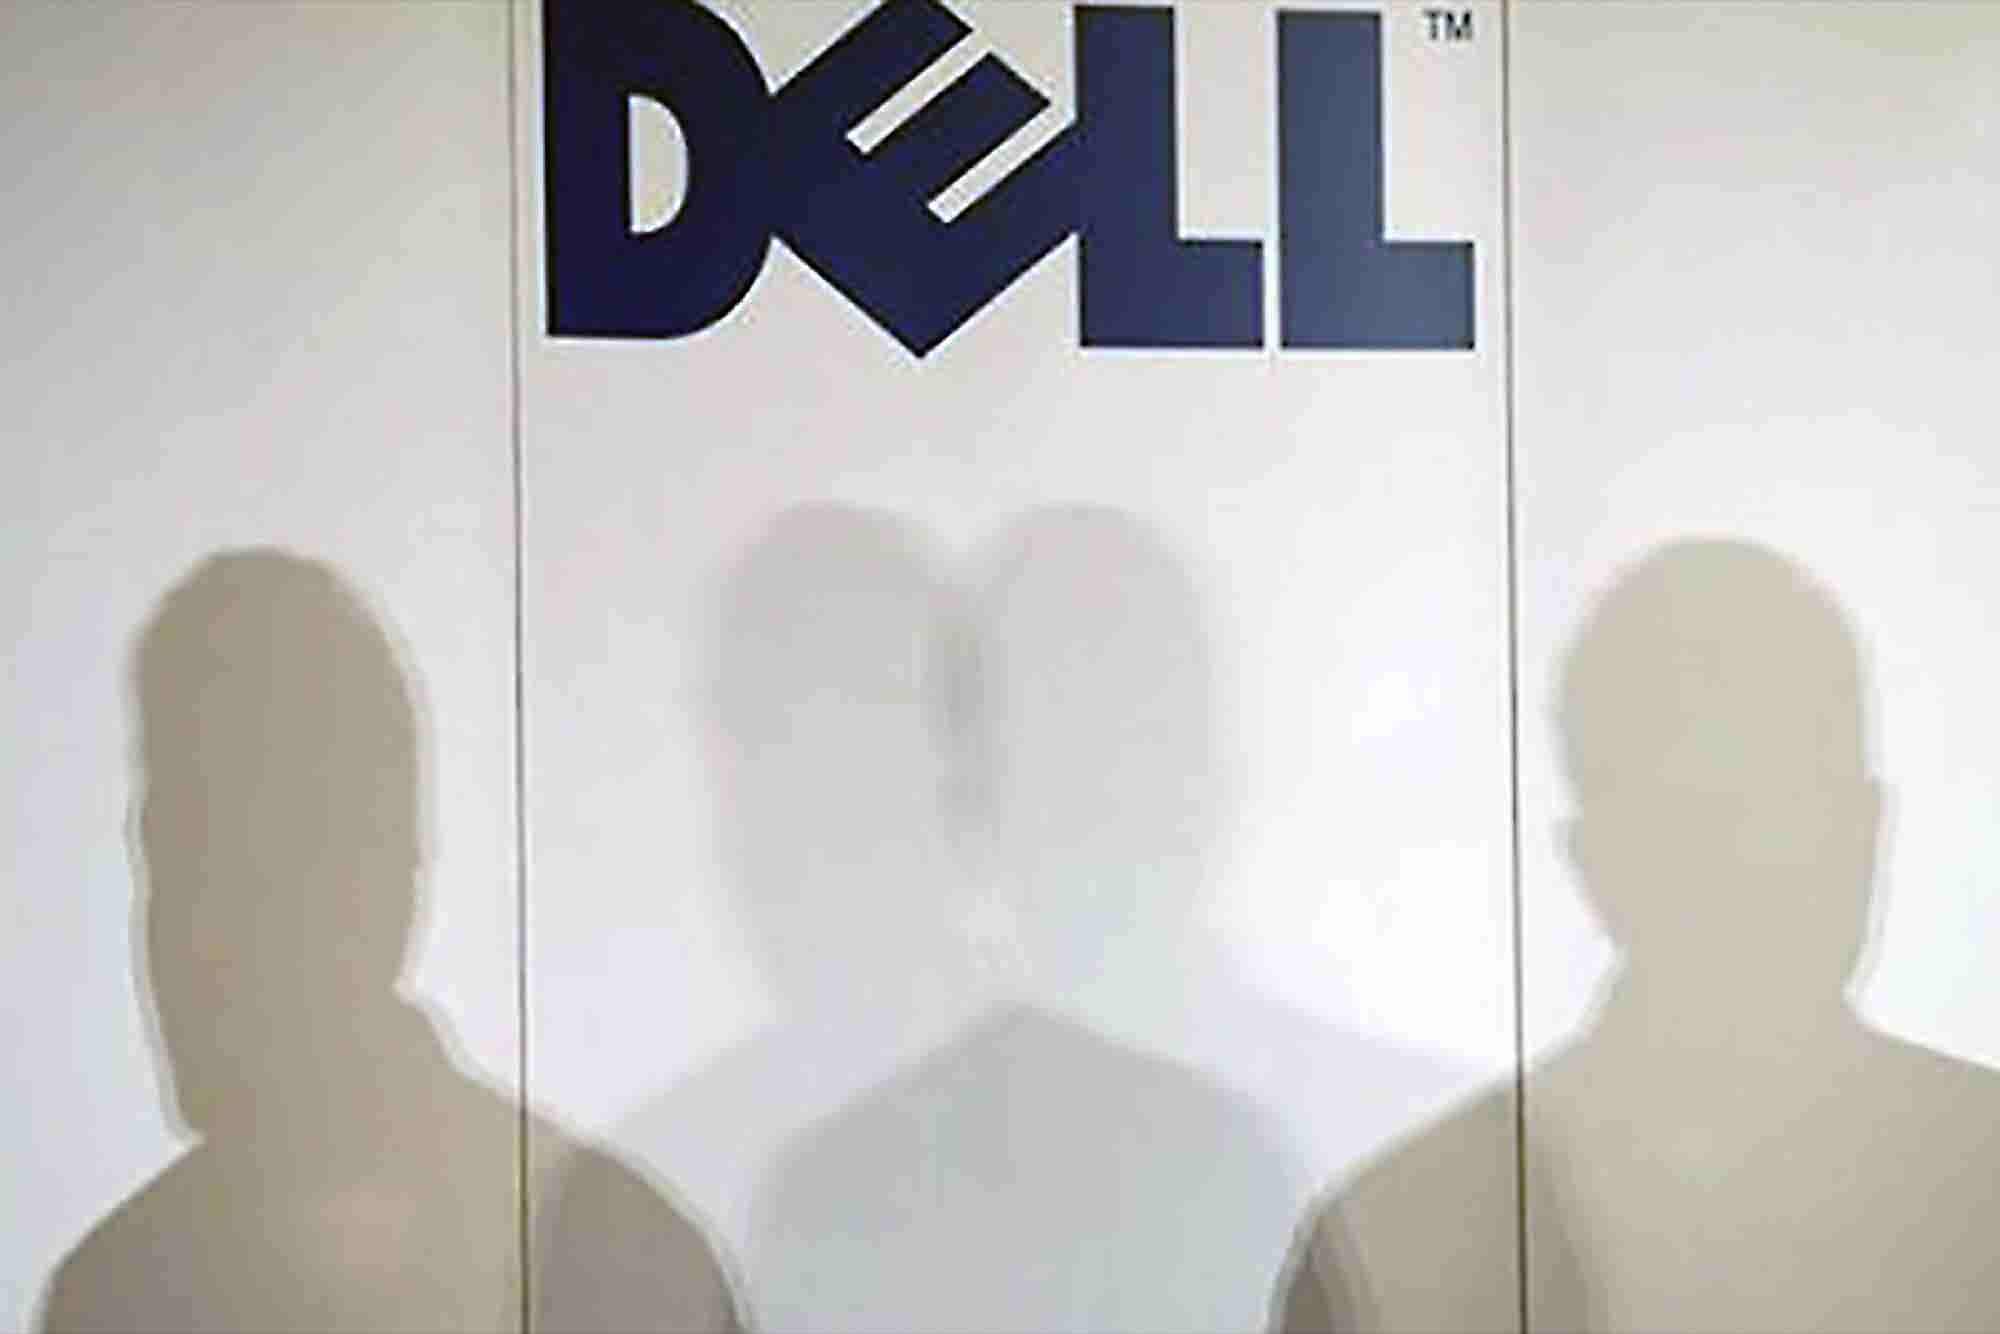 Dell Founder Stands Firm on Buyout Offer